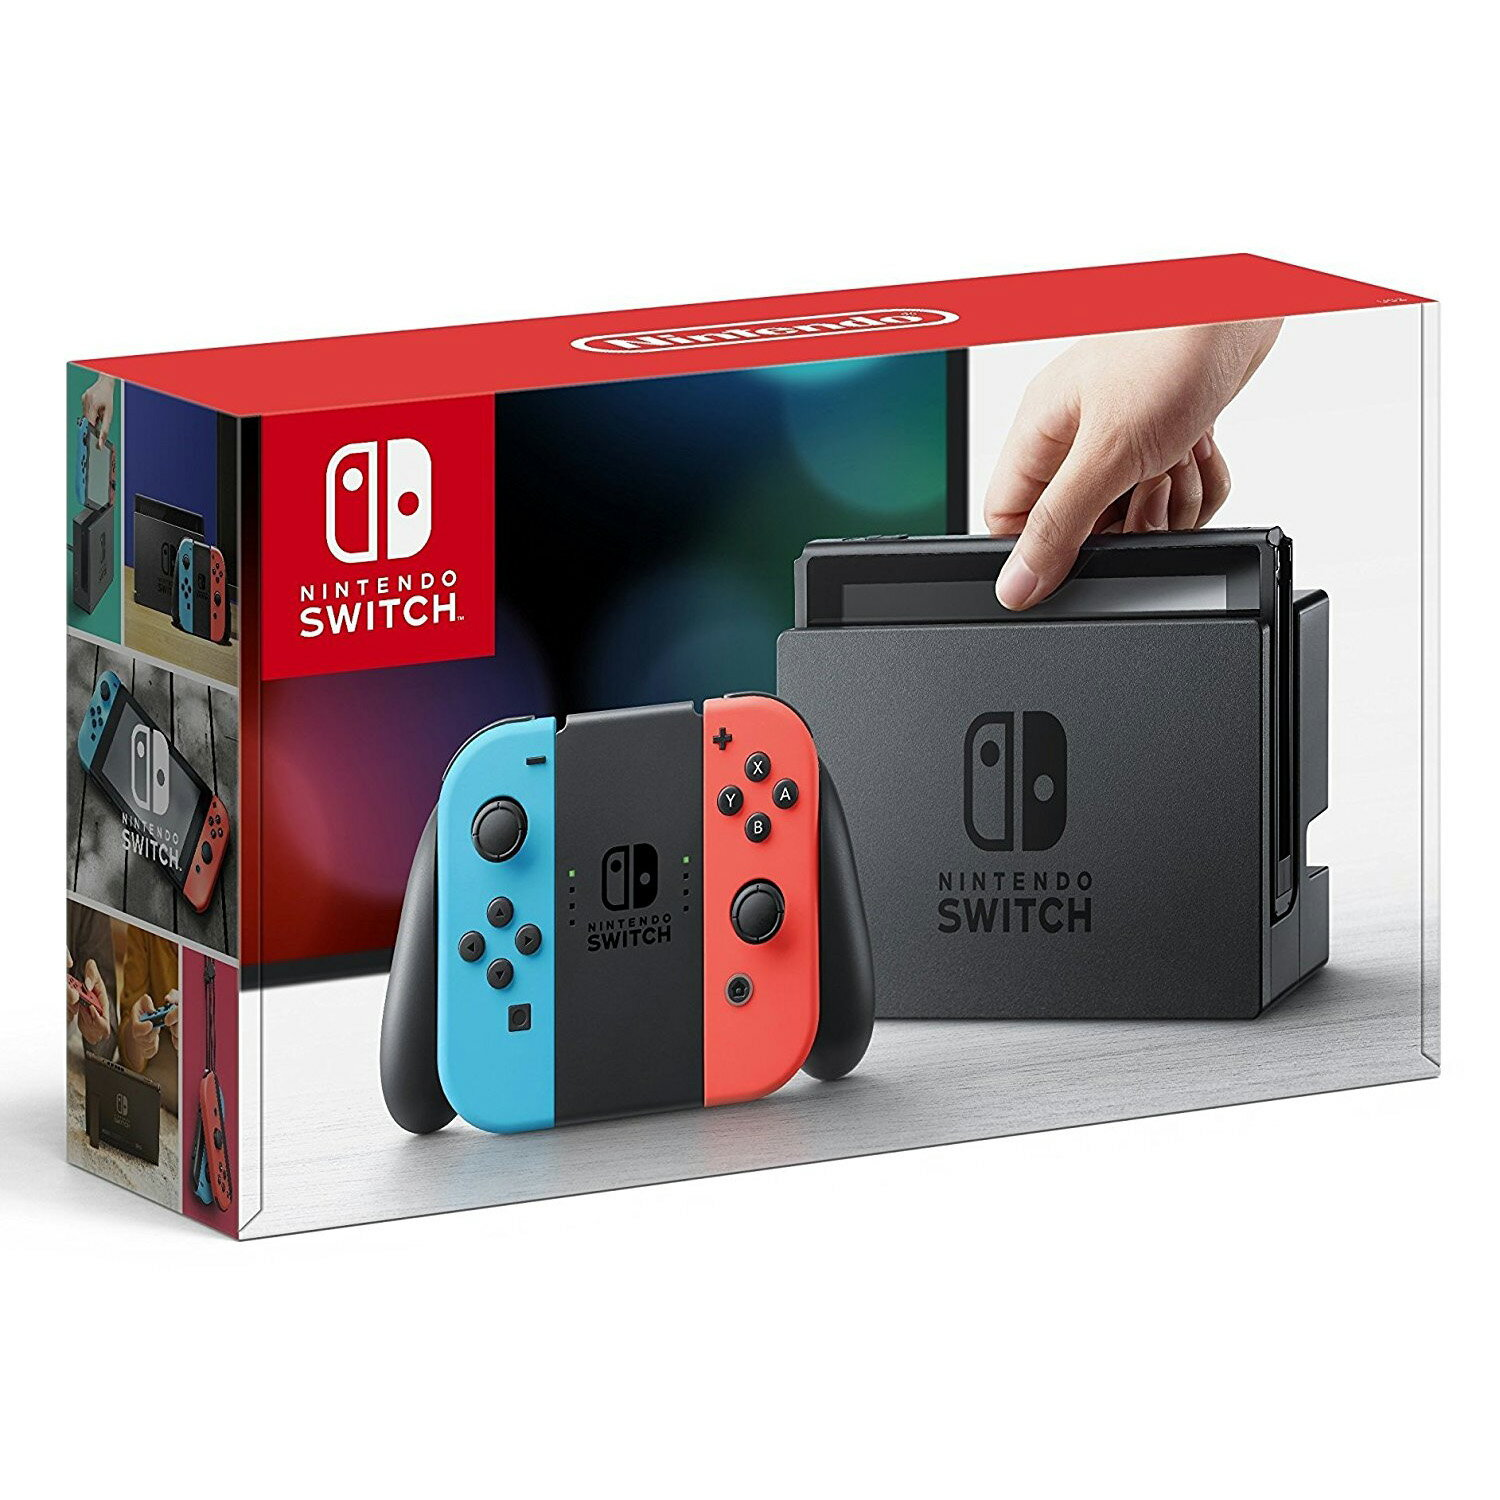 Nintendo Switch Console System 32GB with Neon Blue and Red Joy-Con Wireless Controllers 0